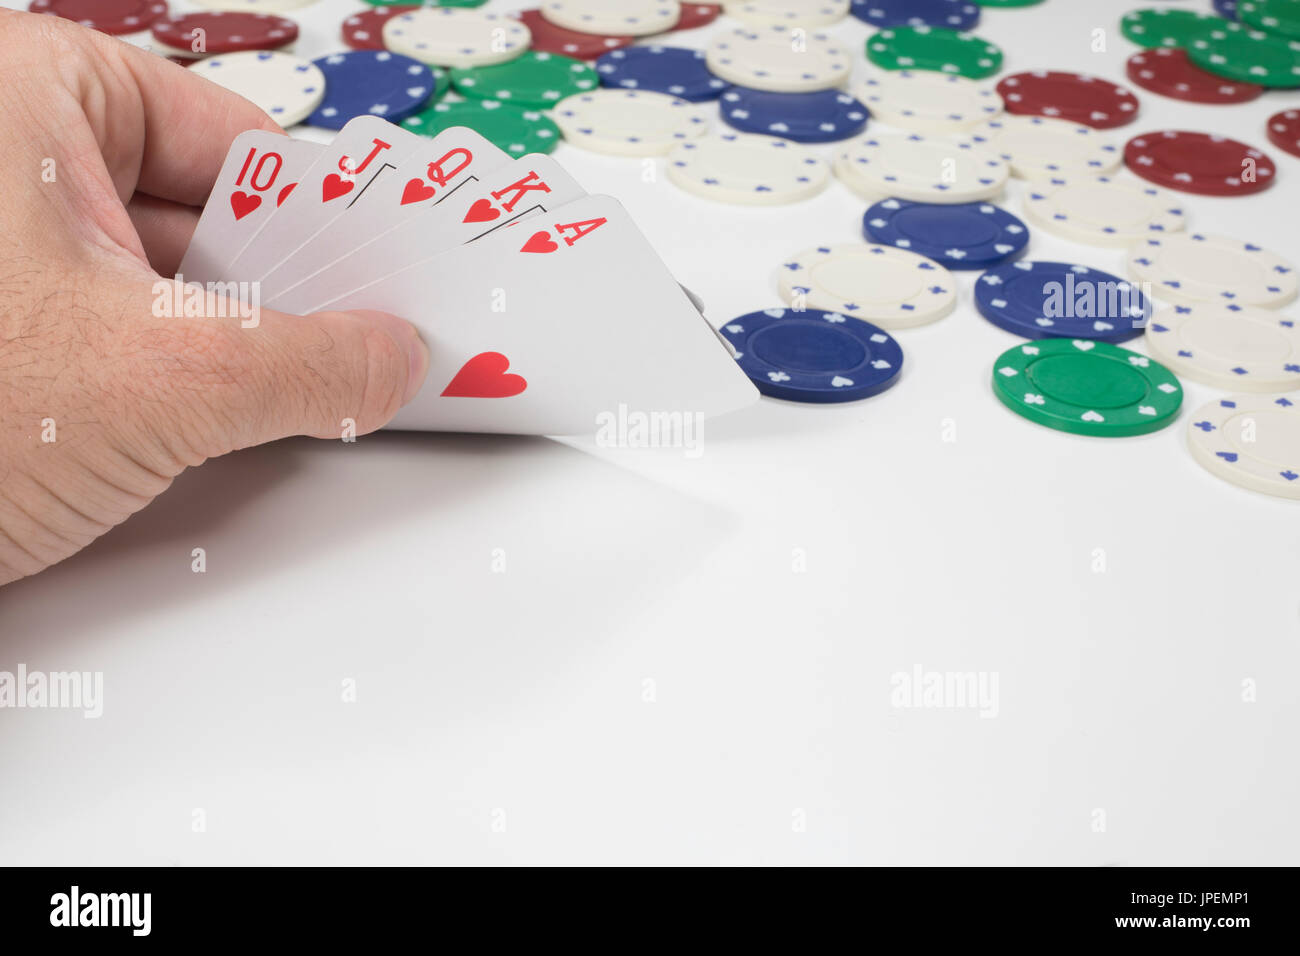 The Ranking of the Poker Cards